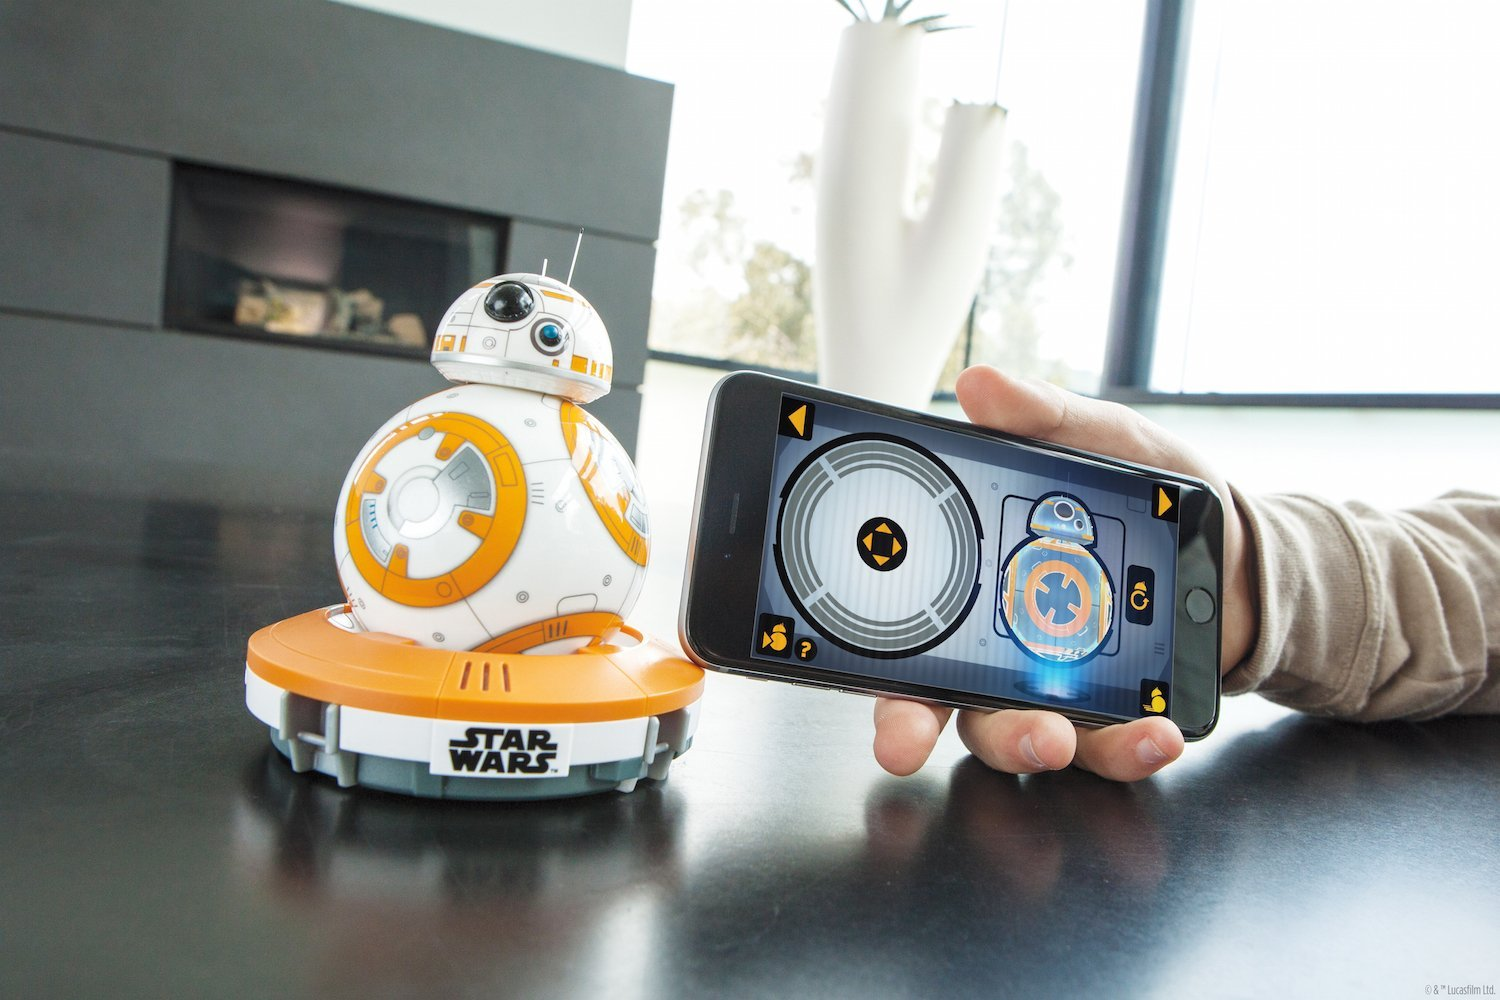 starwars_bb8_droid_and_app